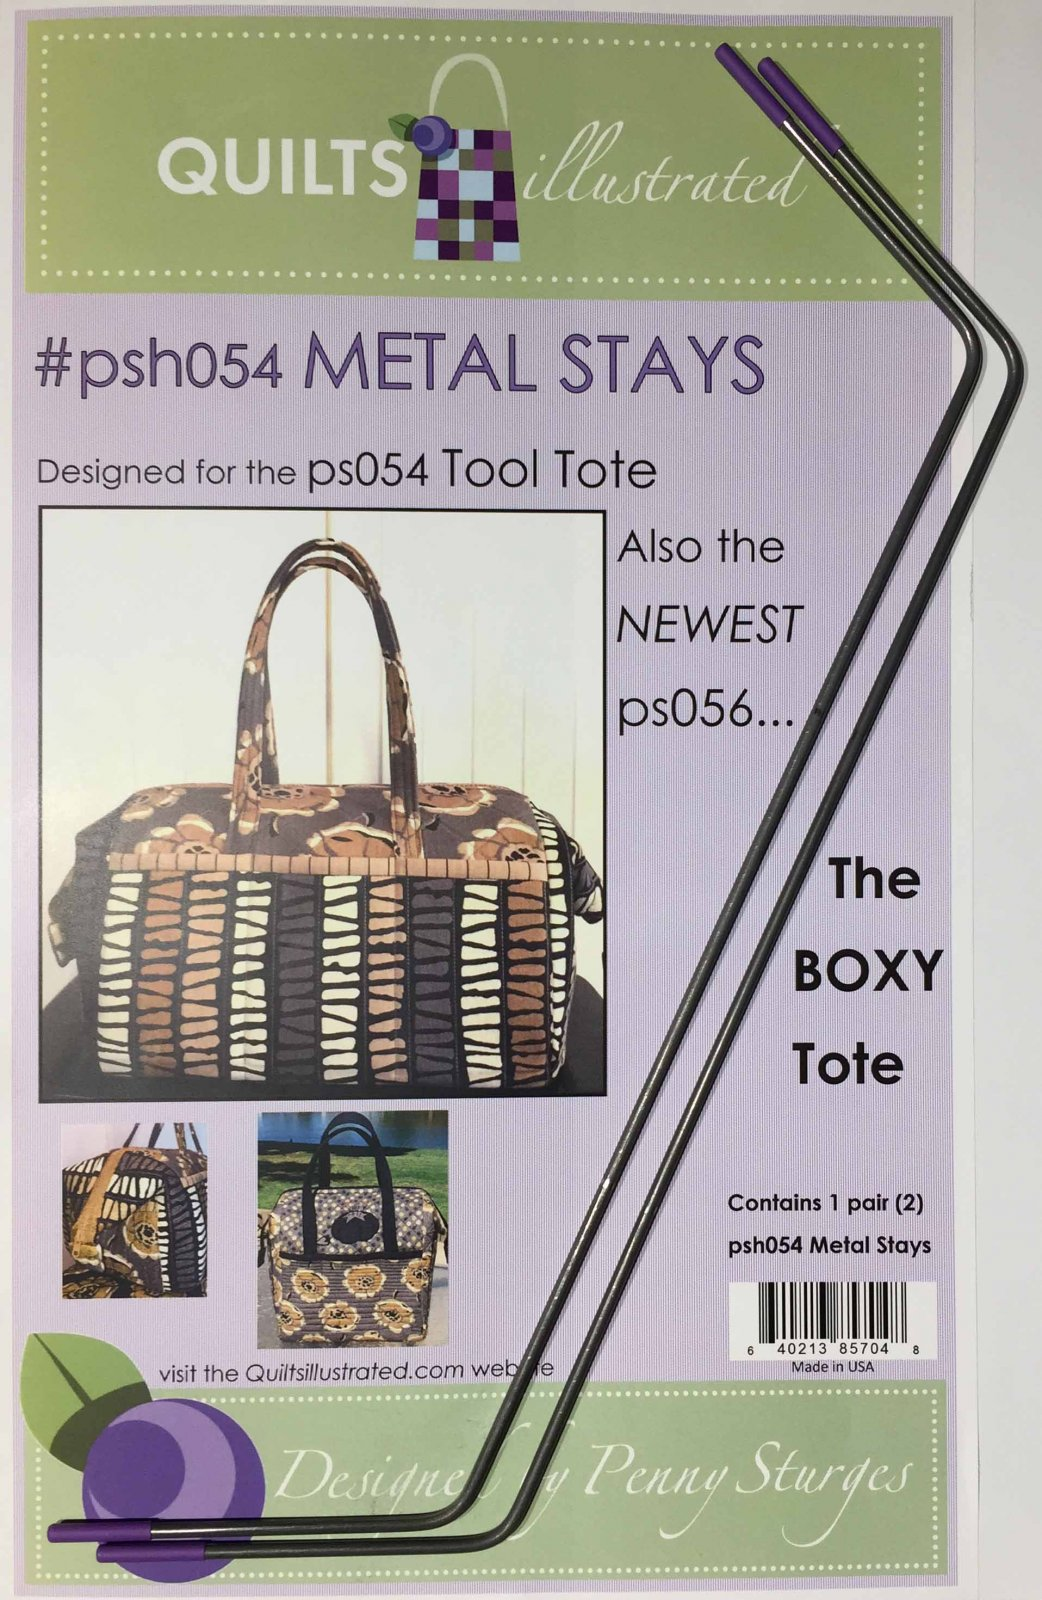 psh054 Metal Stays (for the Tool Tote or Boxy Tote)